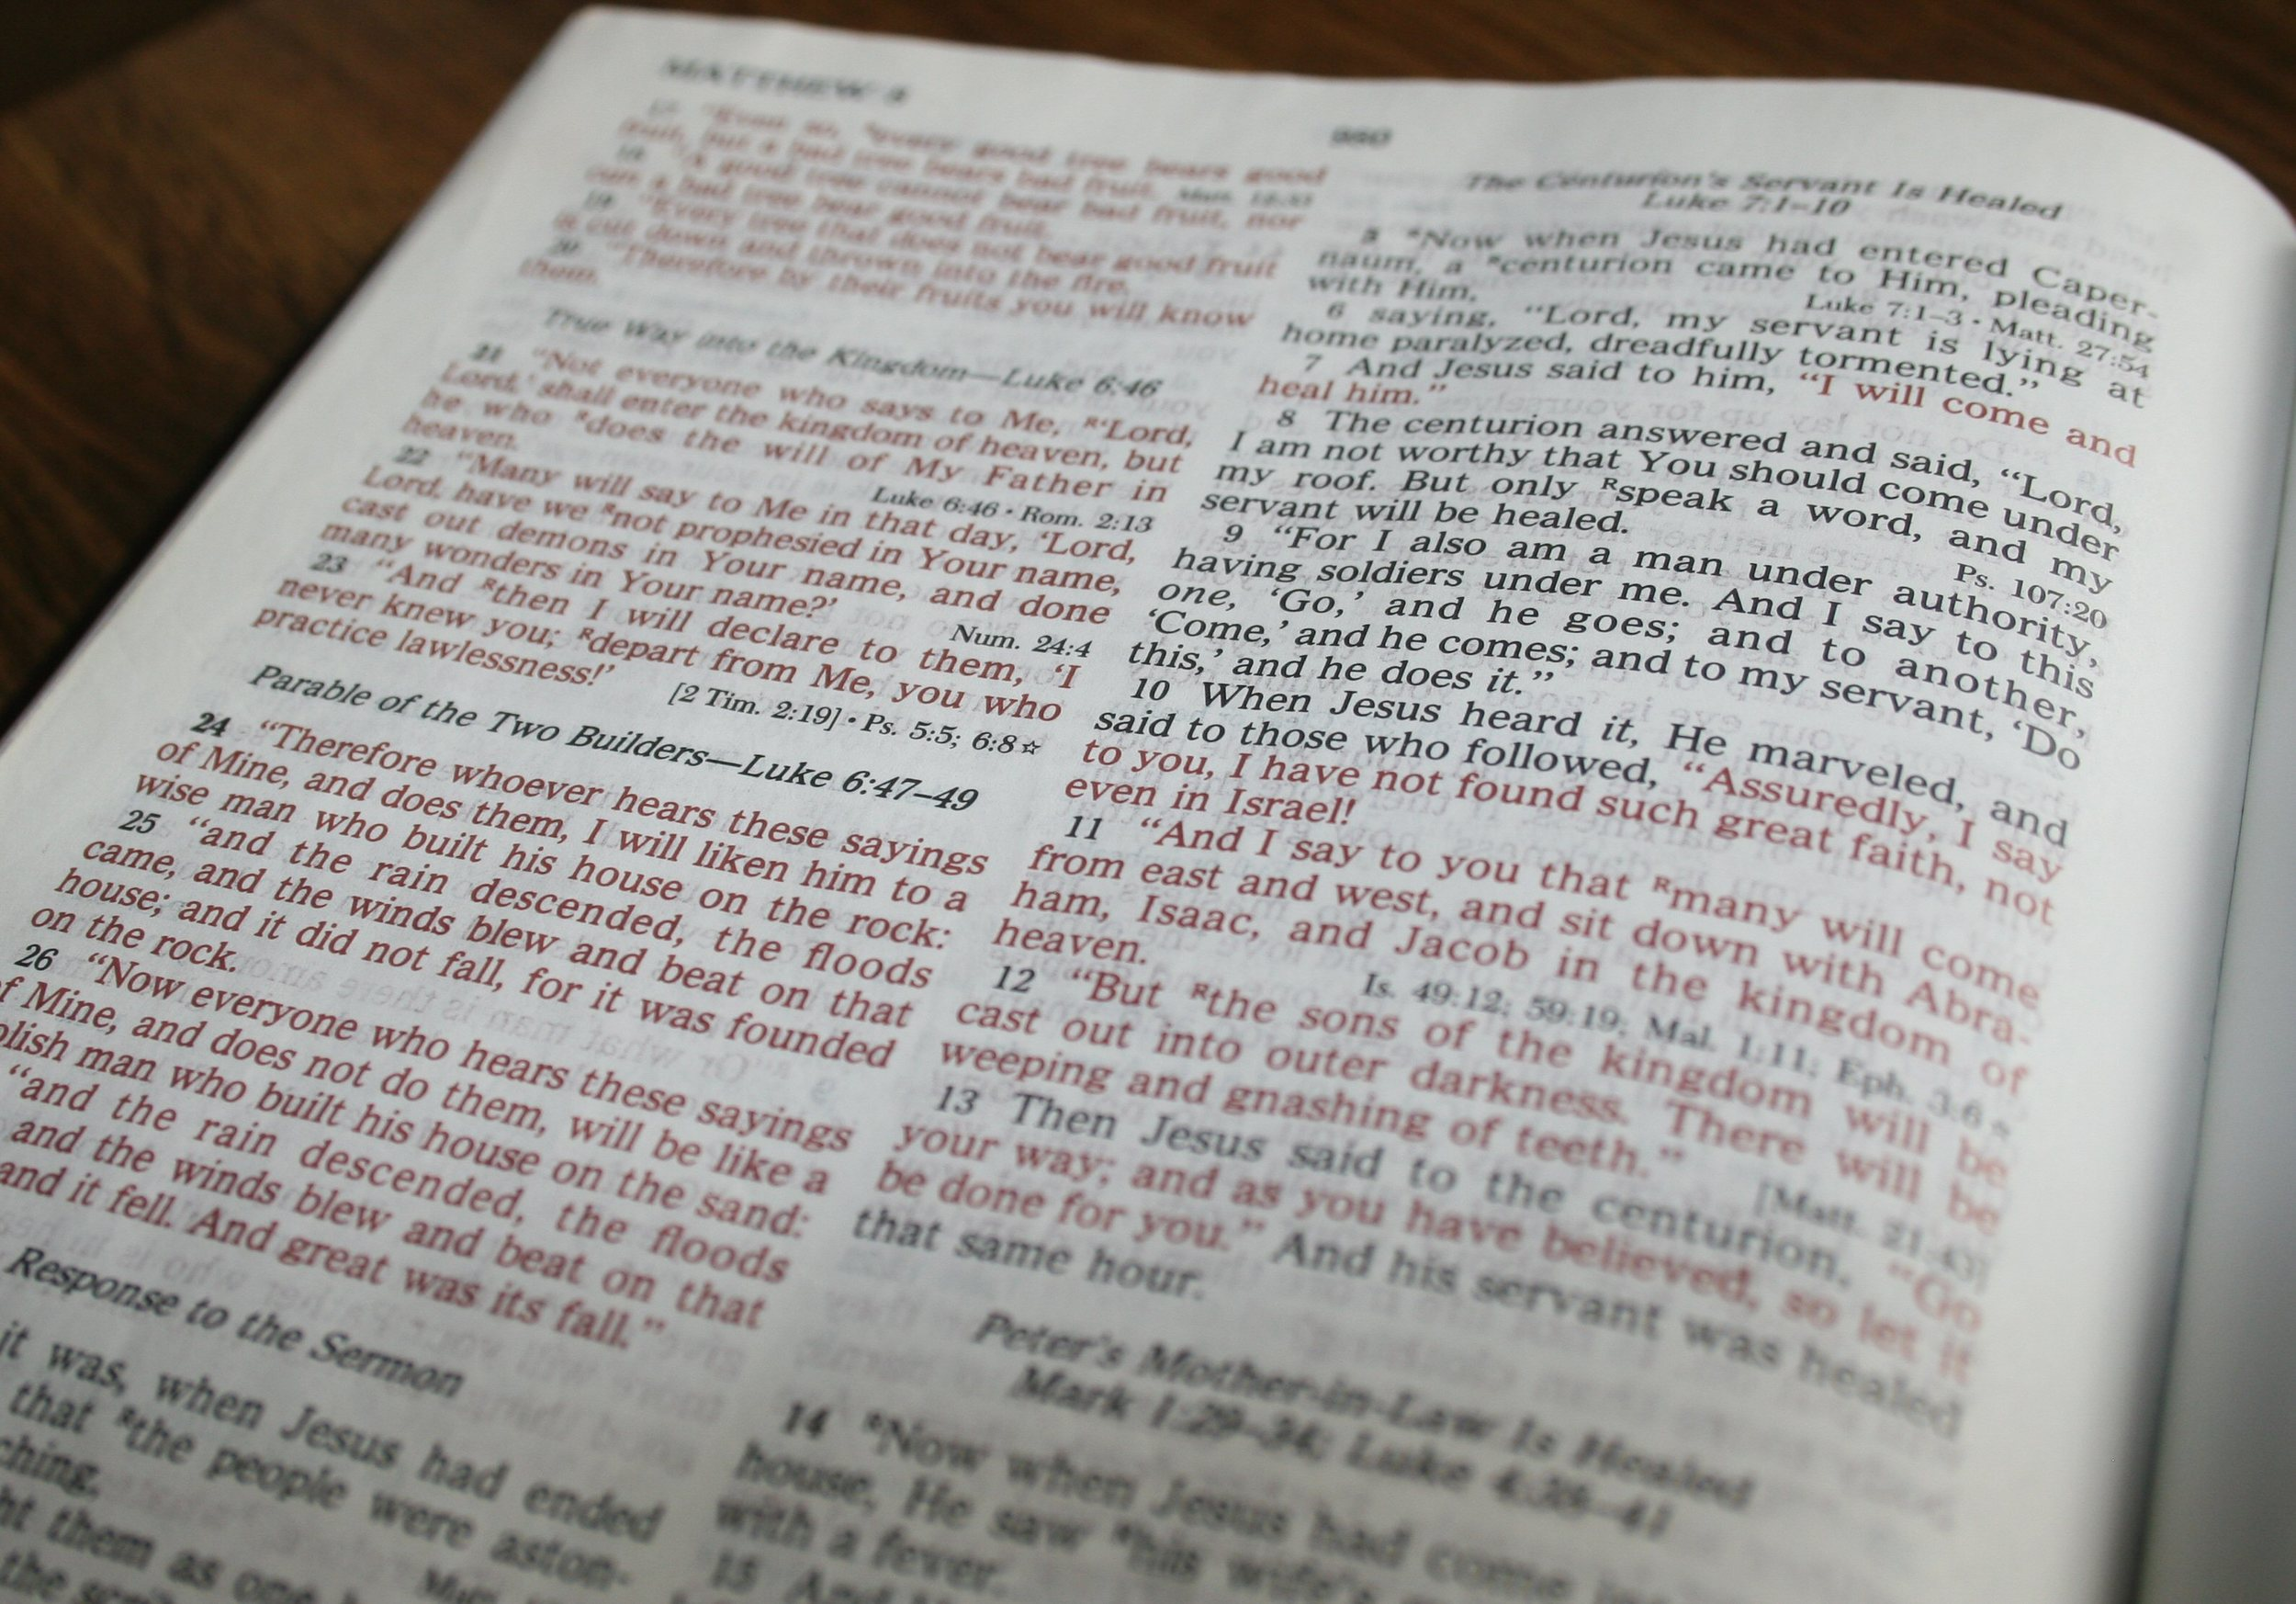 Does Jesus ONLY speak in the Gospels and Acts? (Image: pryorconvictions.com)